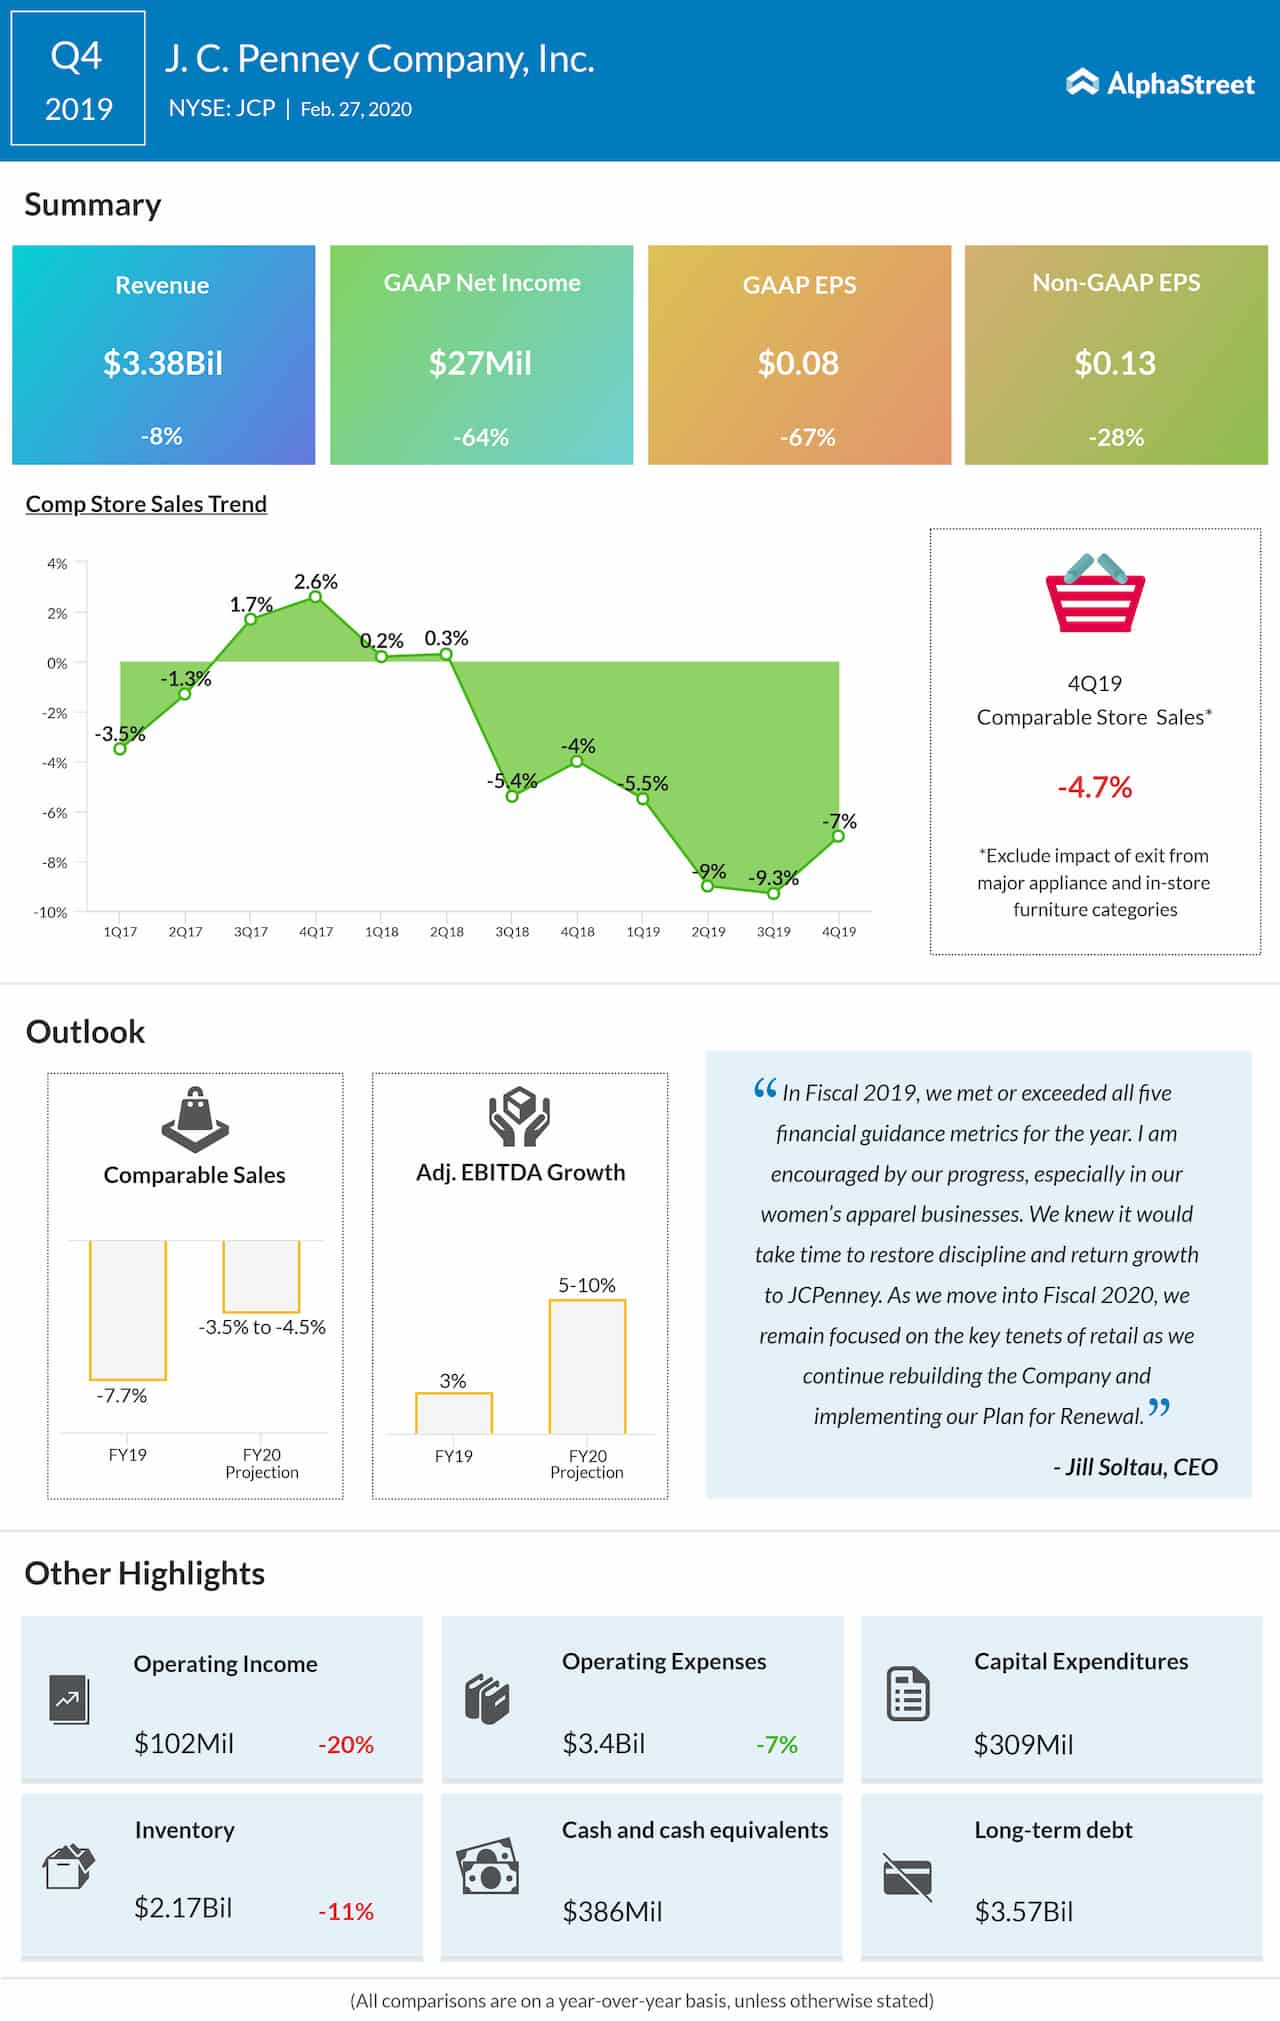 JC Penney Company (NYSE: JCP) Q4 2019 Earnings Snapshot